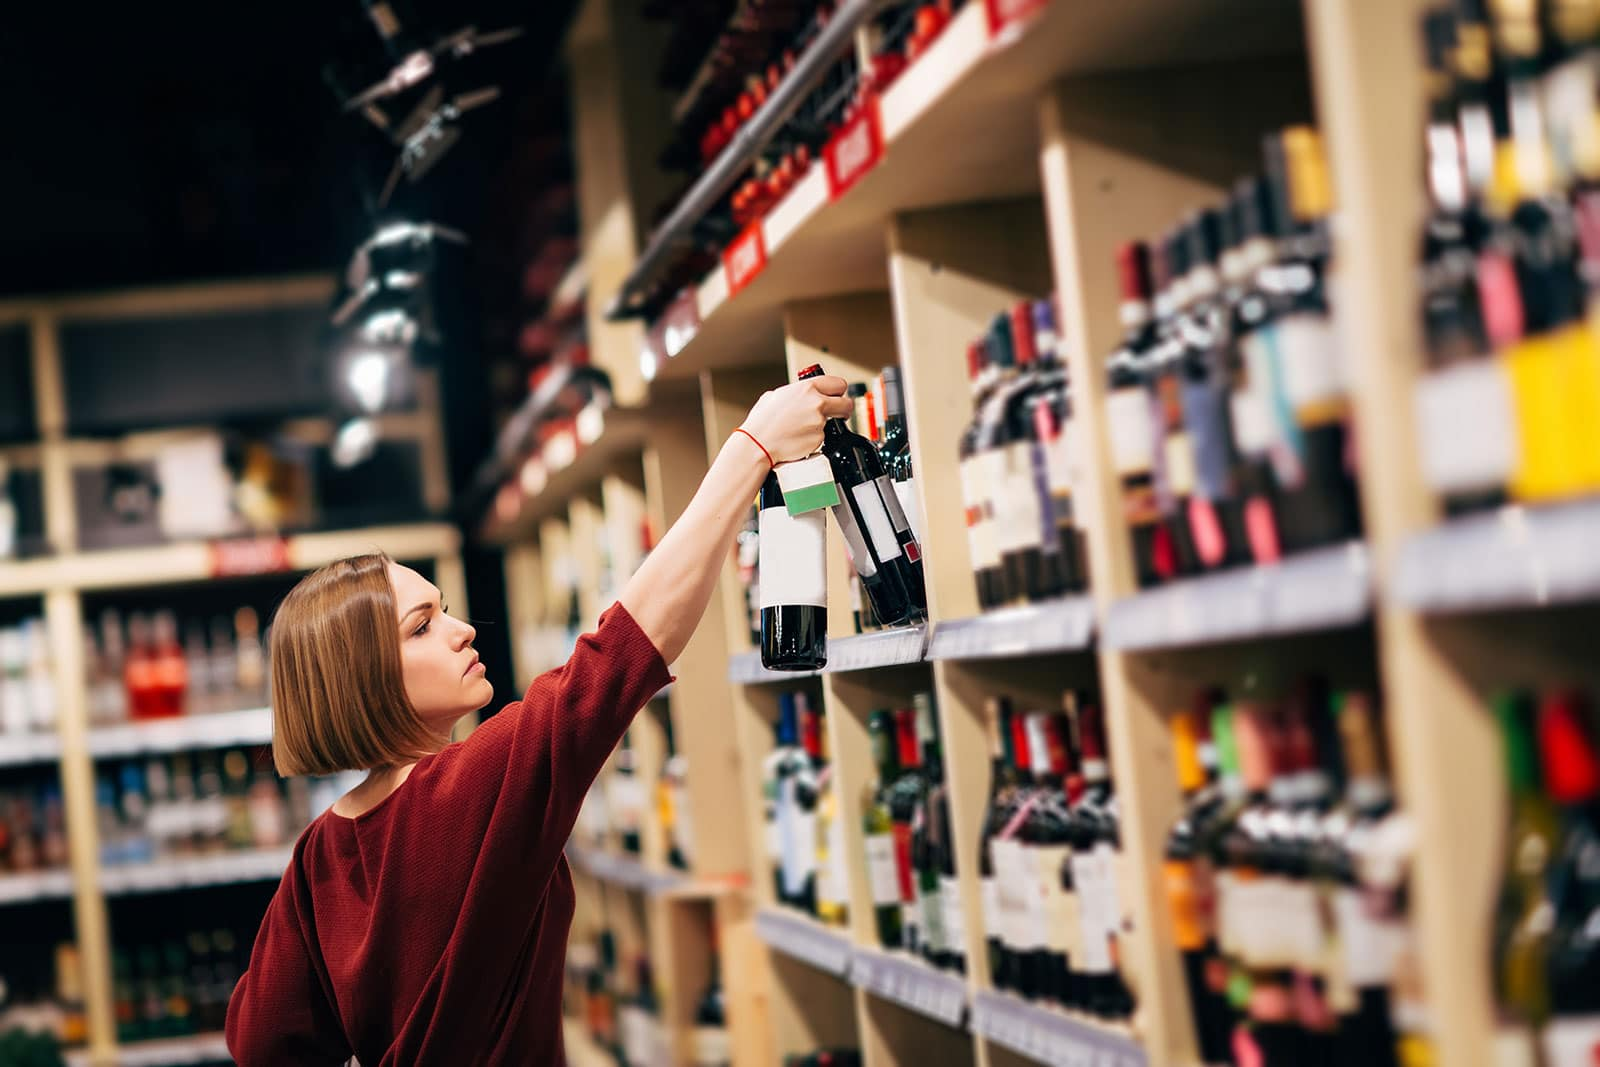 Spiking Alcohol Sales and Declining Rehab Enrolment